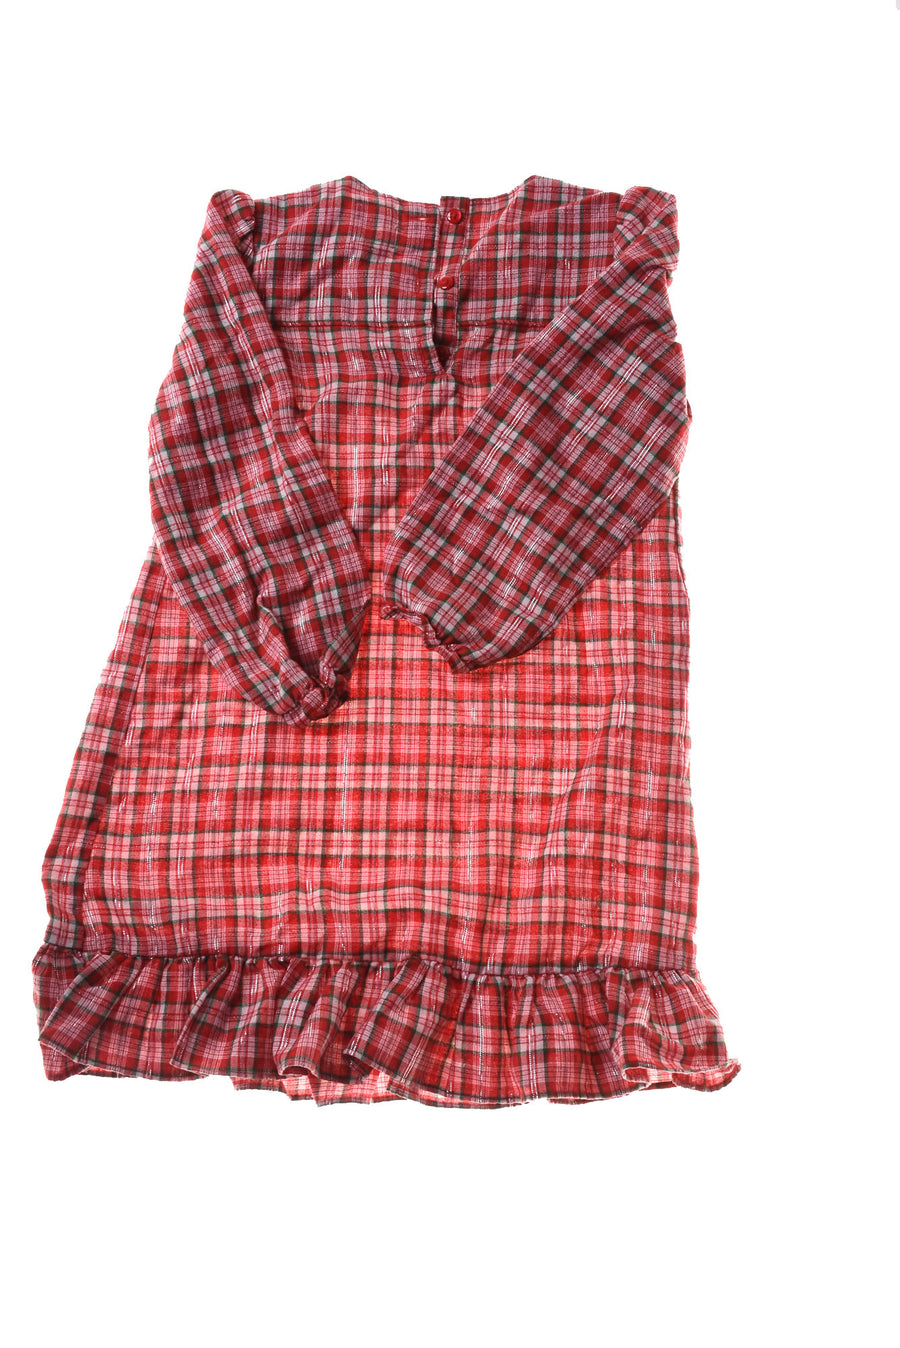 USED Oshkosh Girl's Nightgown 6 Red & Green